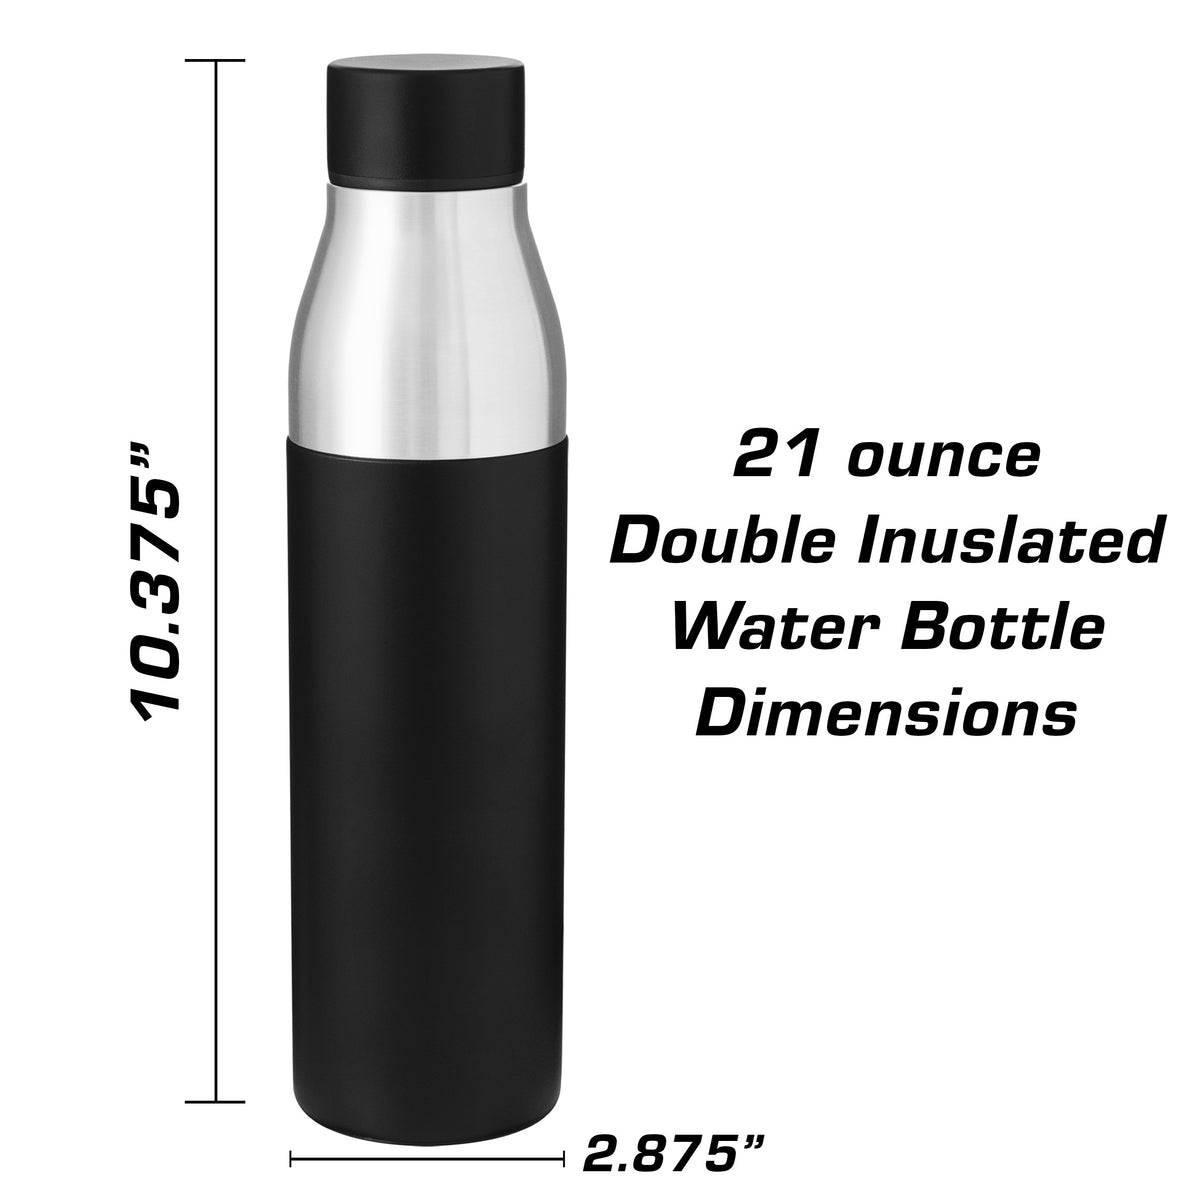 Porsche 911 Pebbles Insulated Stainless Steel Water Bottle - 21 oz